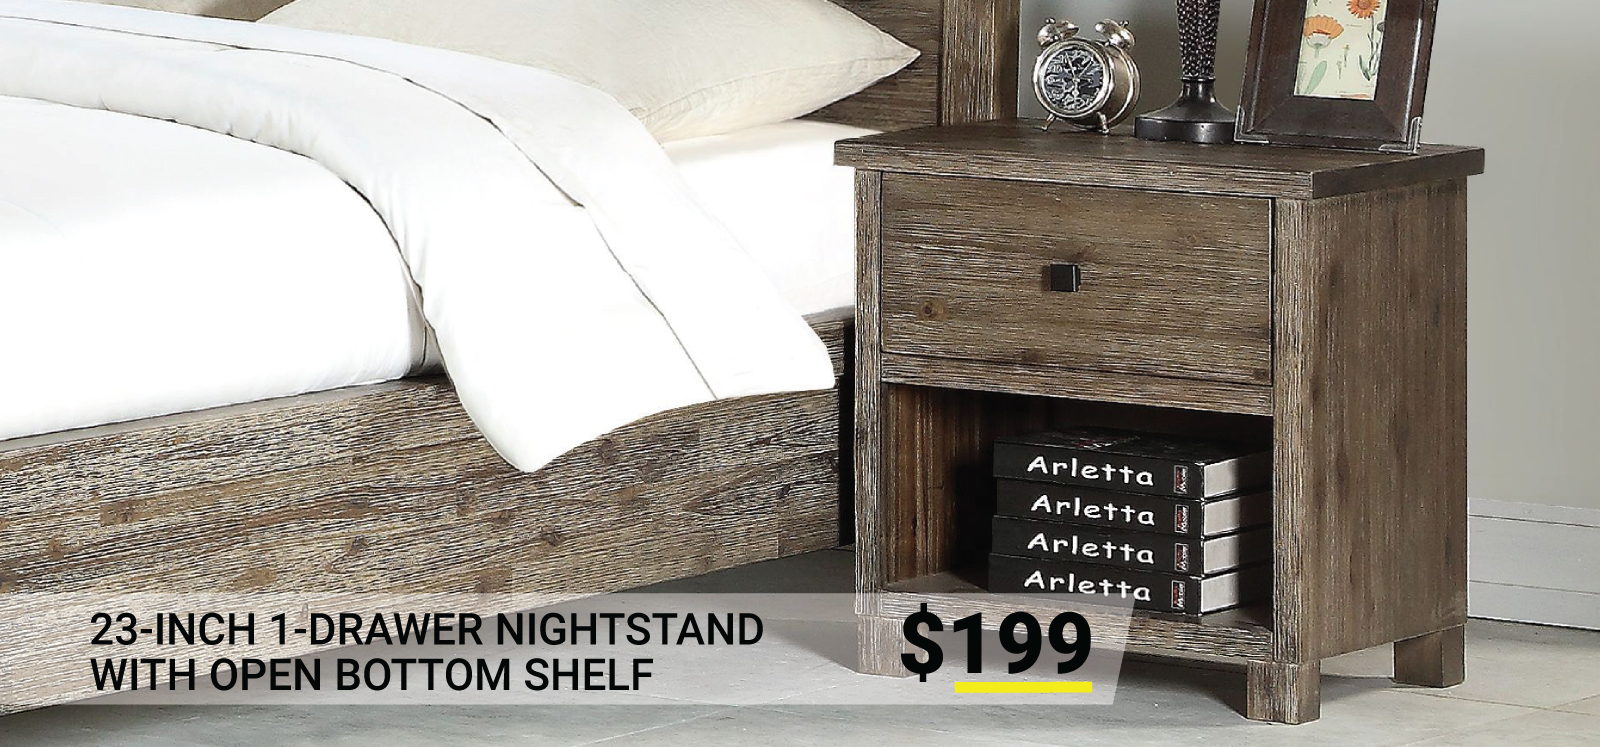 23-Inch 1-Drawer Nightstand with Open Bottom Shelf $199